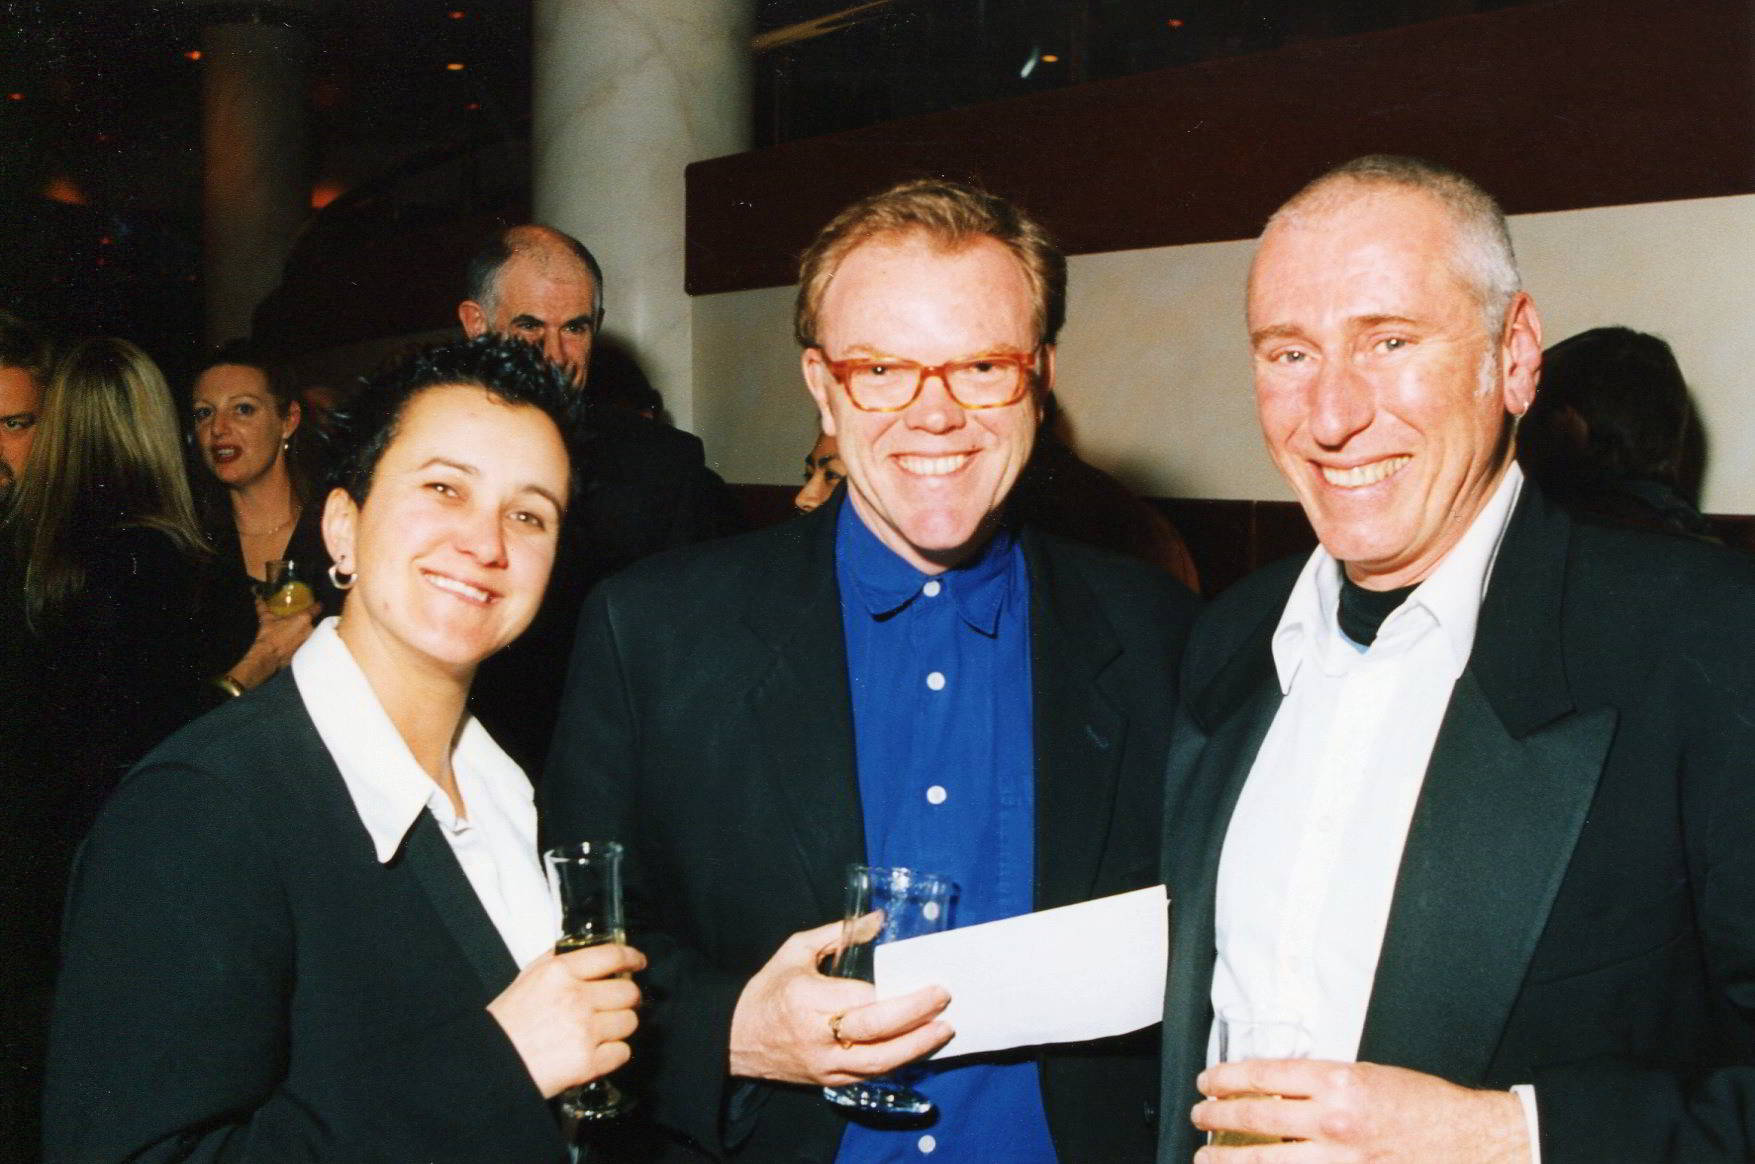 __Artistic Director David Bell__ with Megan Cameron and Rod Primrose 2 party goers posing